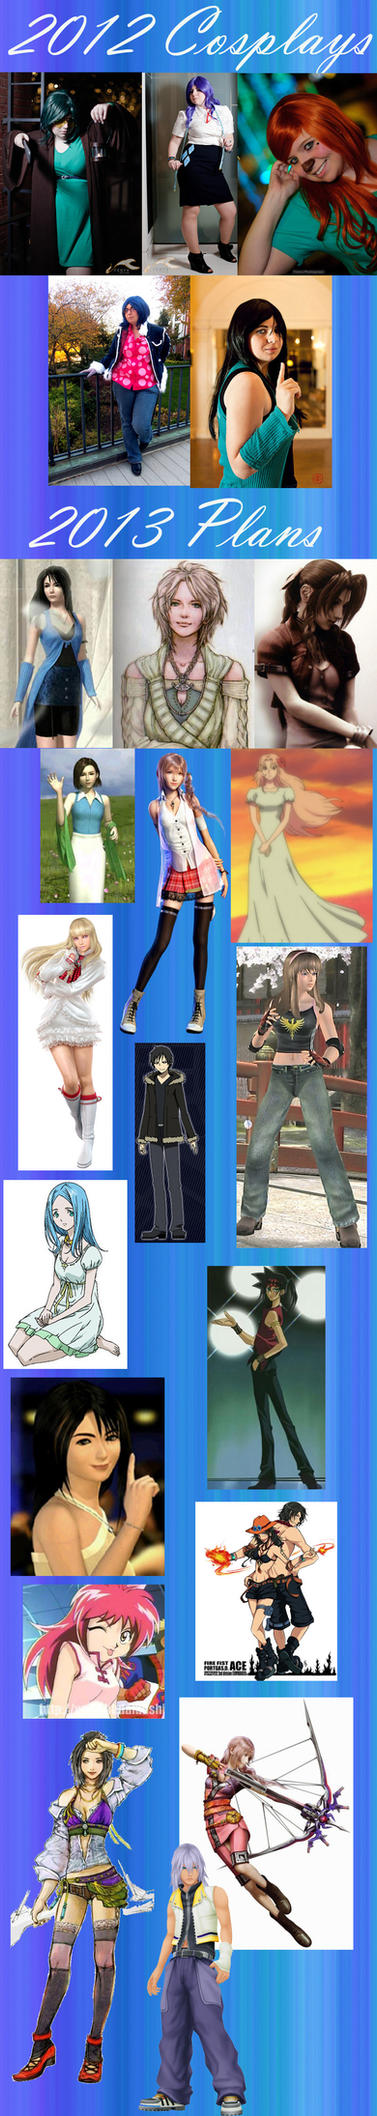 Fayina's 2012 Cosplays + 2013 Plans by 0nSilverWingsX